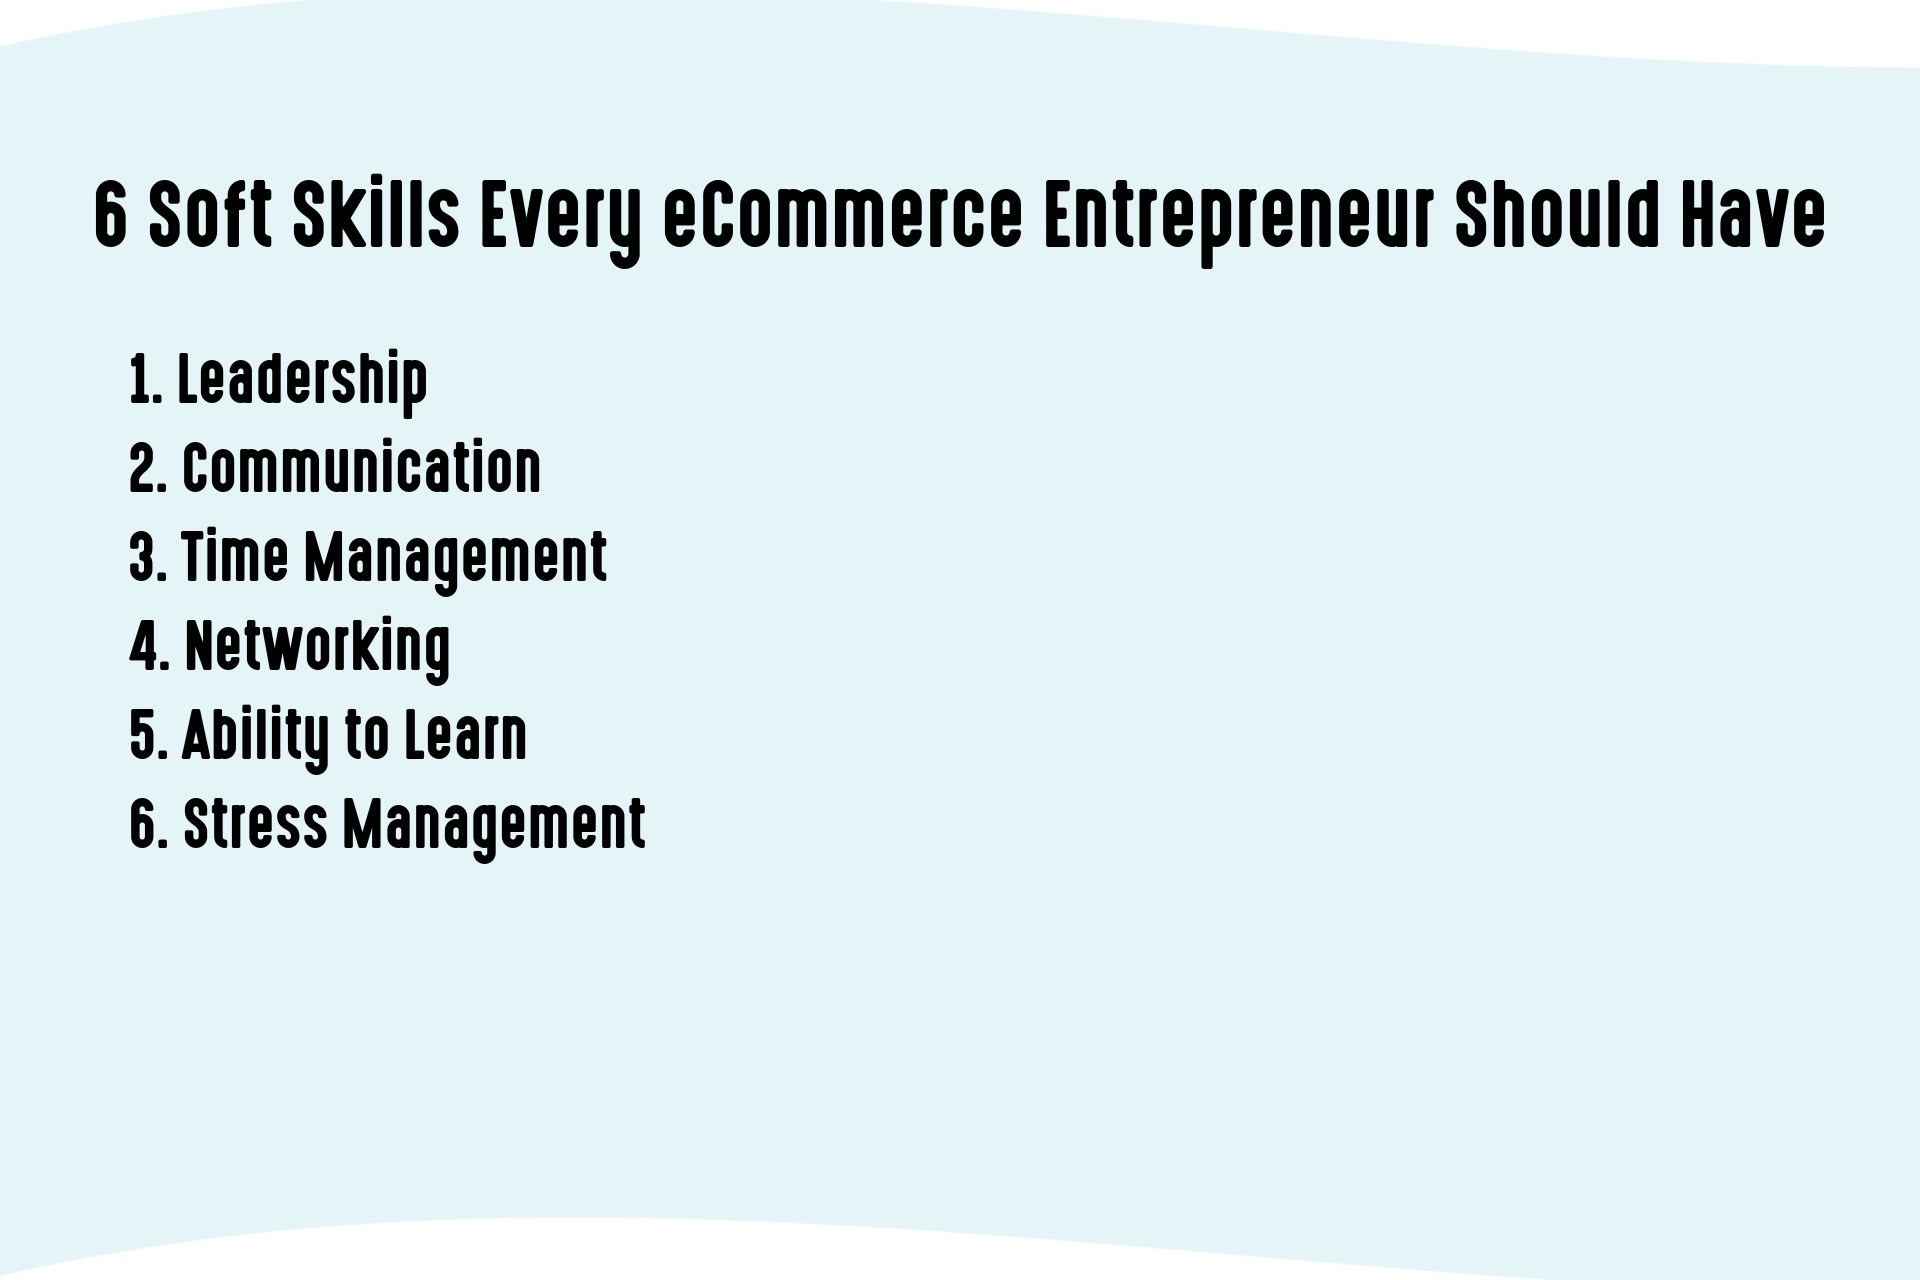 6 Soft Skills Every eCommerce Entrepreneur Should Have